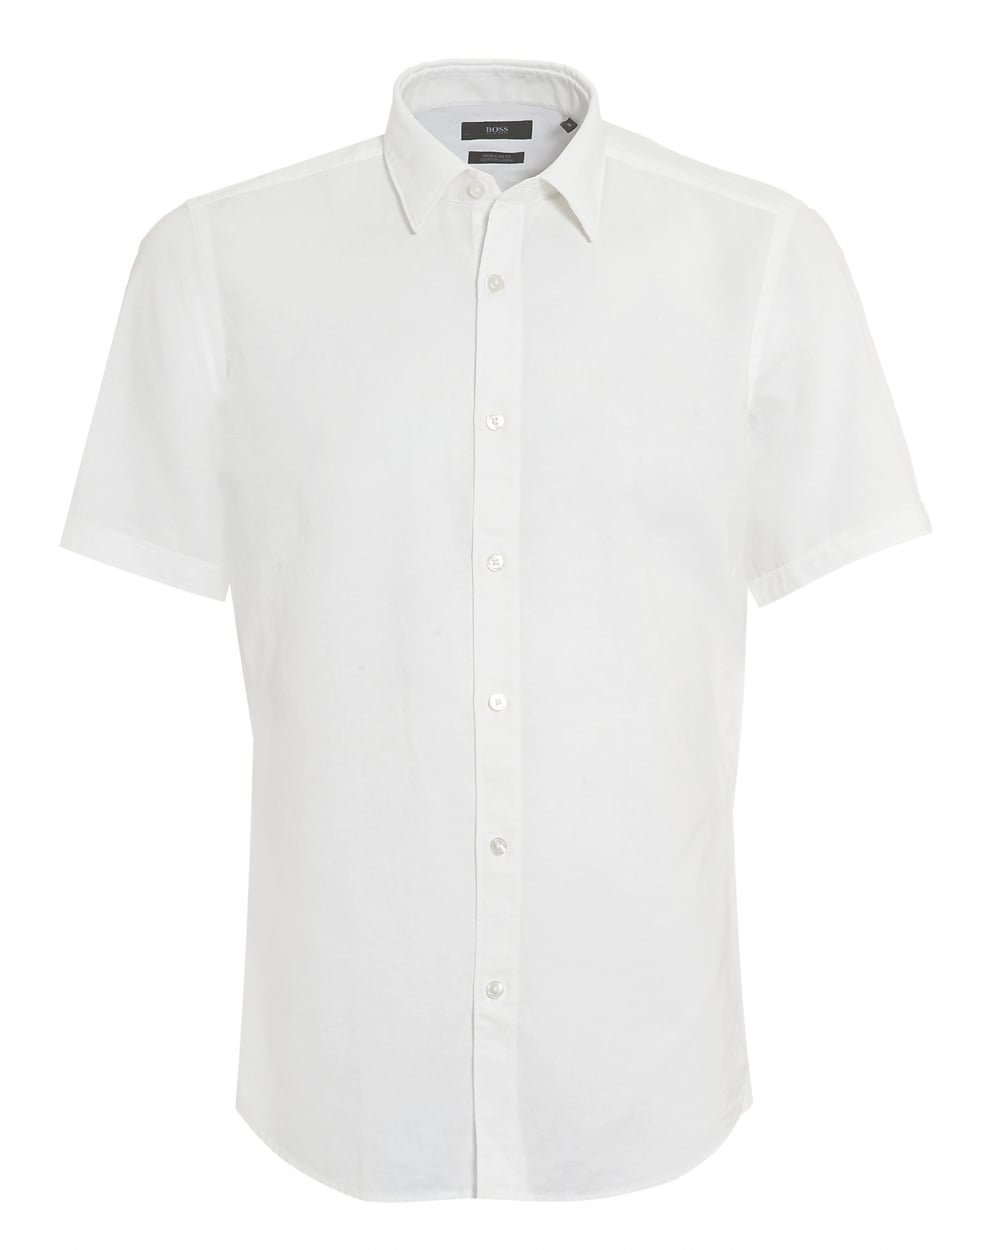 Find great deals on eBay for mens short sleeve cotton shirts. Shop with confidence.